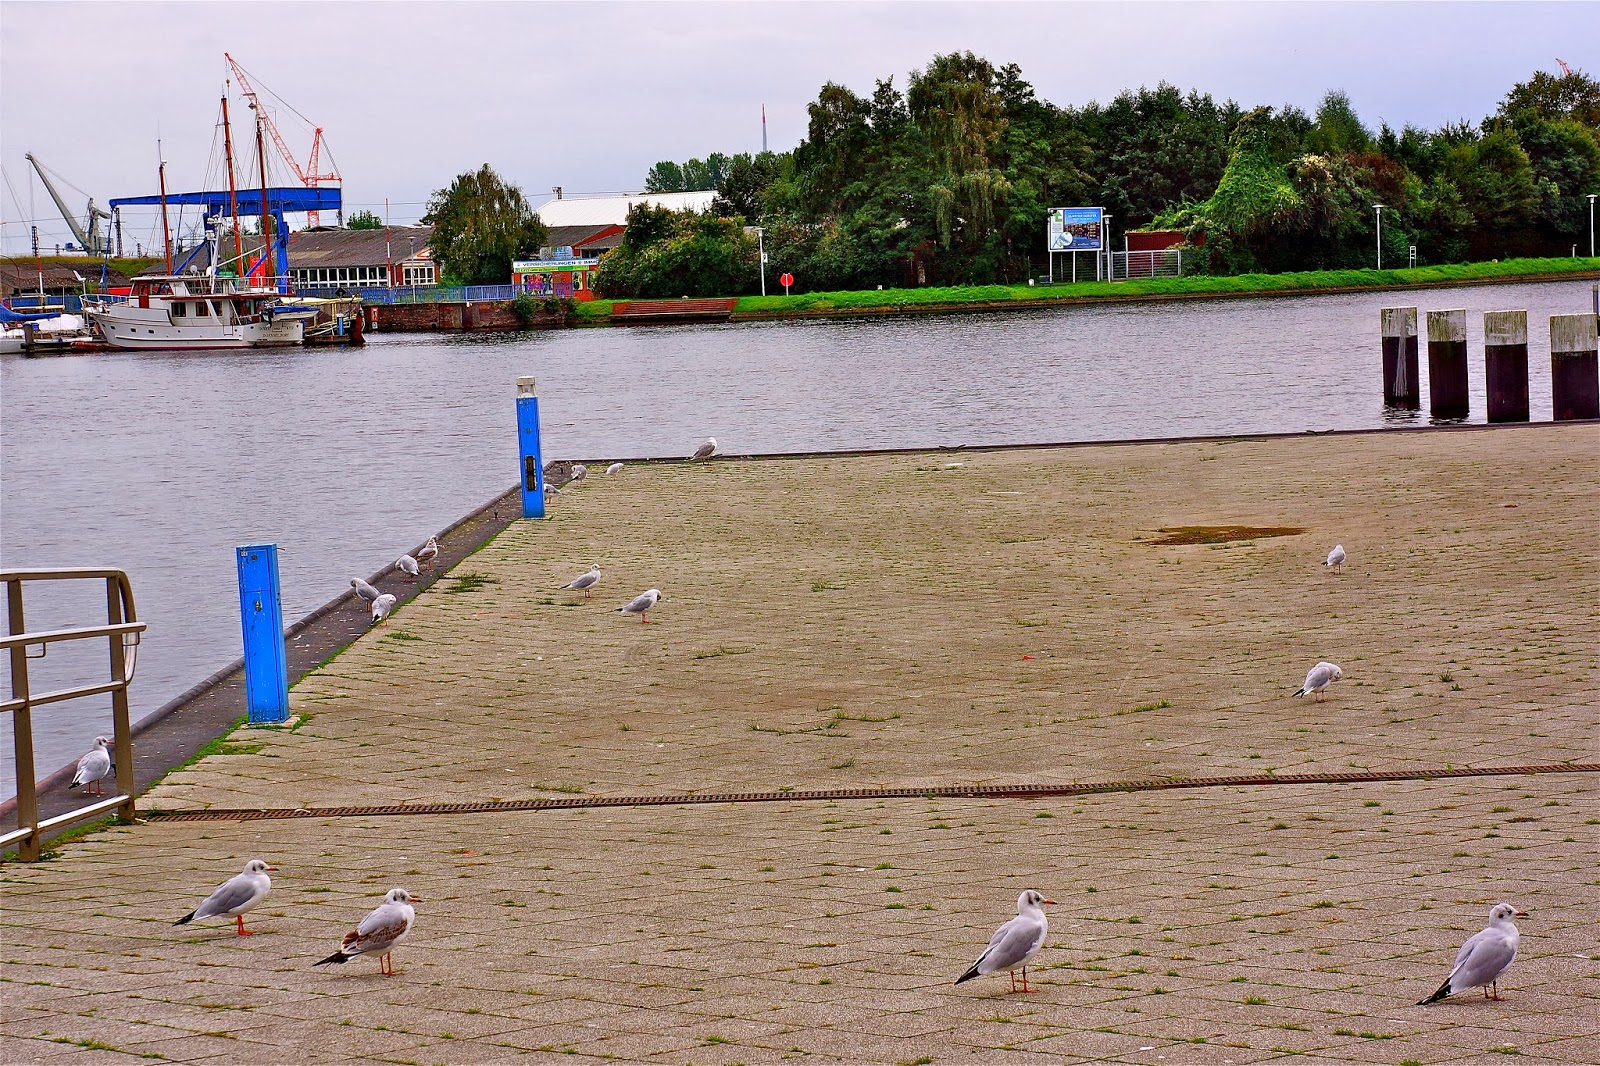 Picture of seagulls in Emden, Germany.